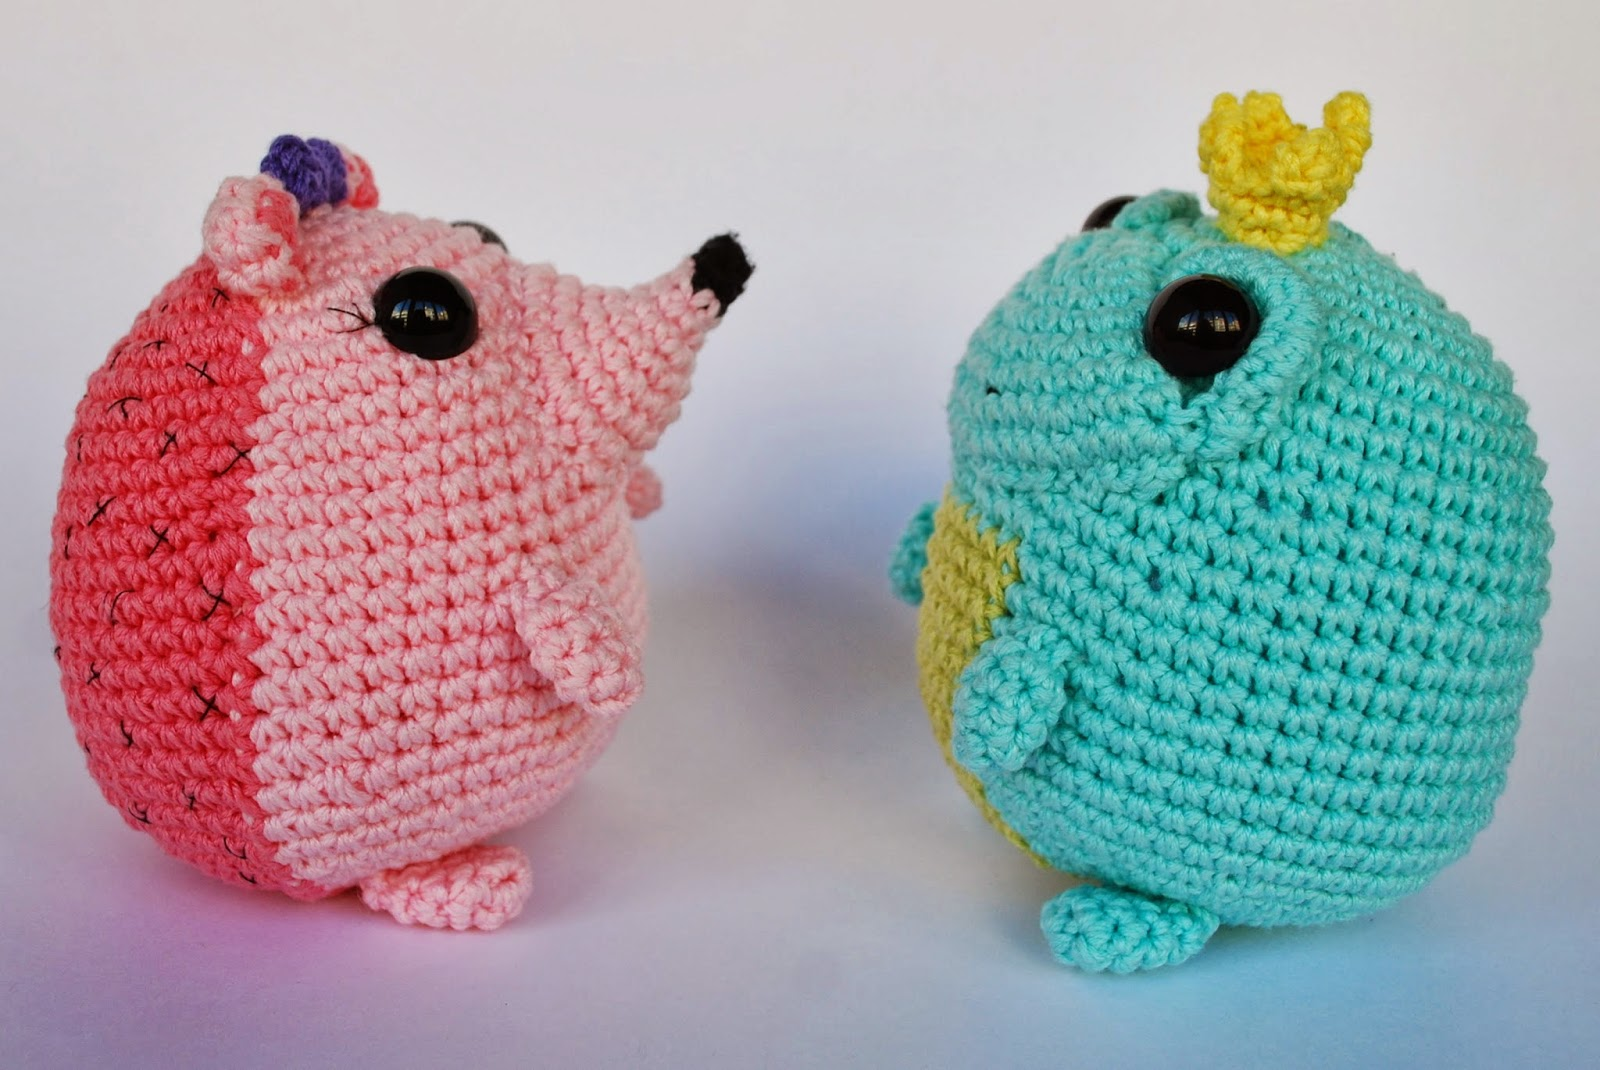 crochet hedgehog and toad